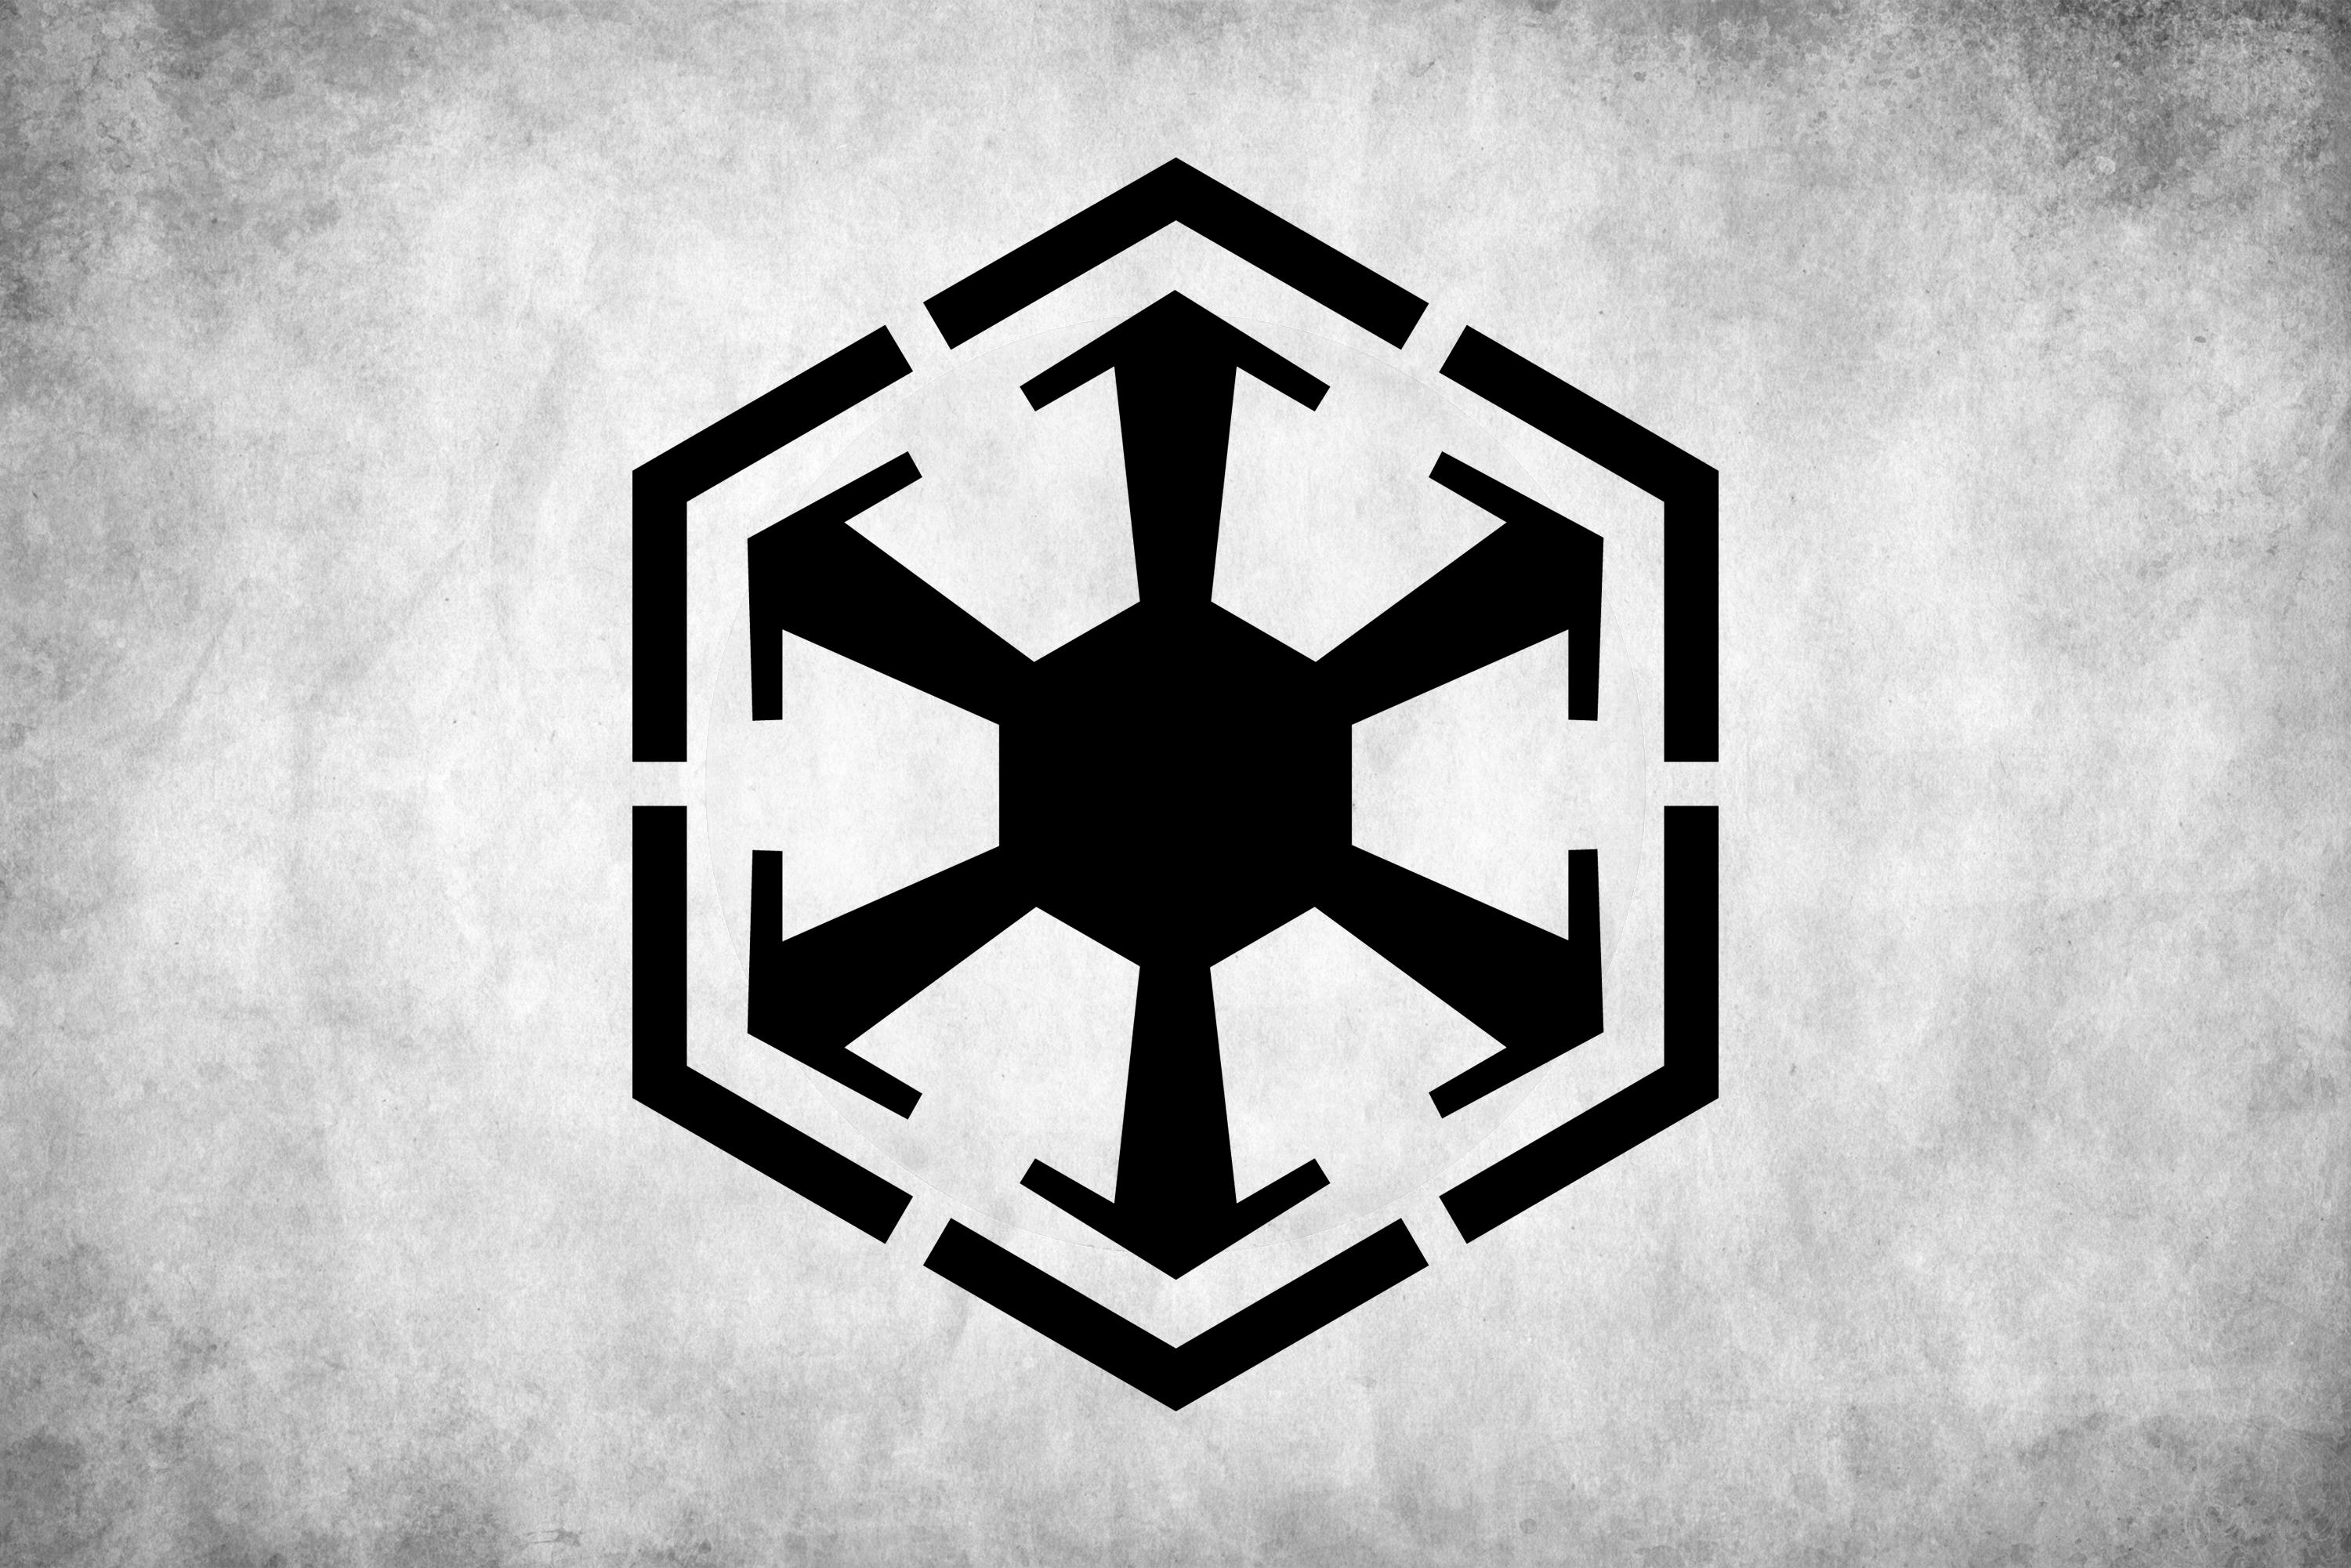 Image For > Sith Logo Wallpapers